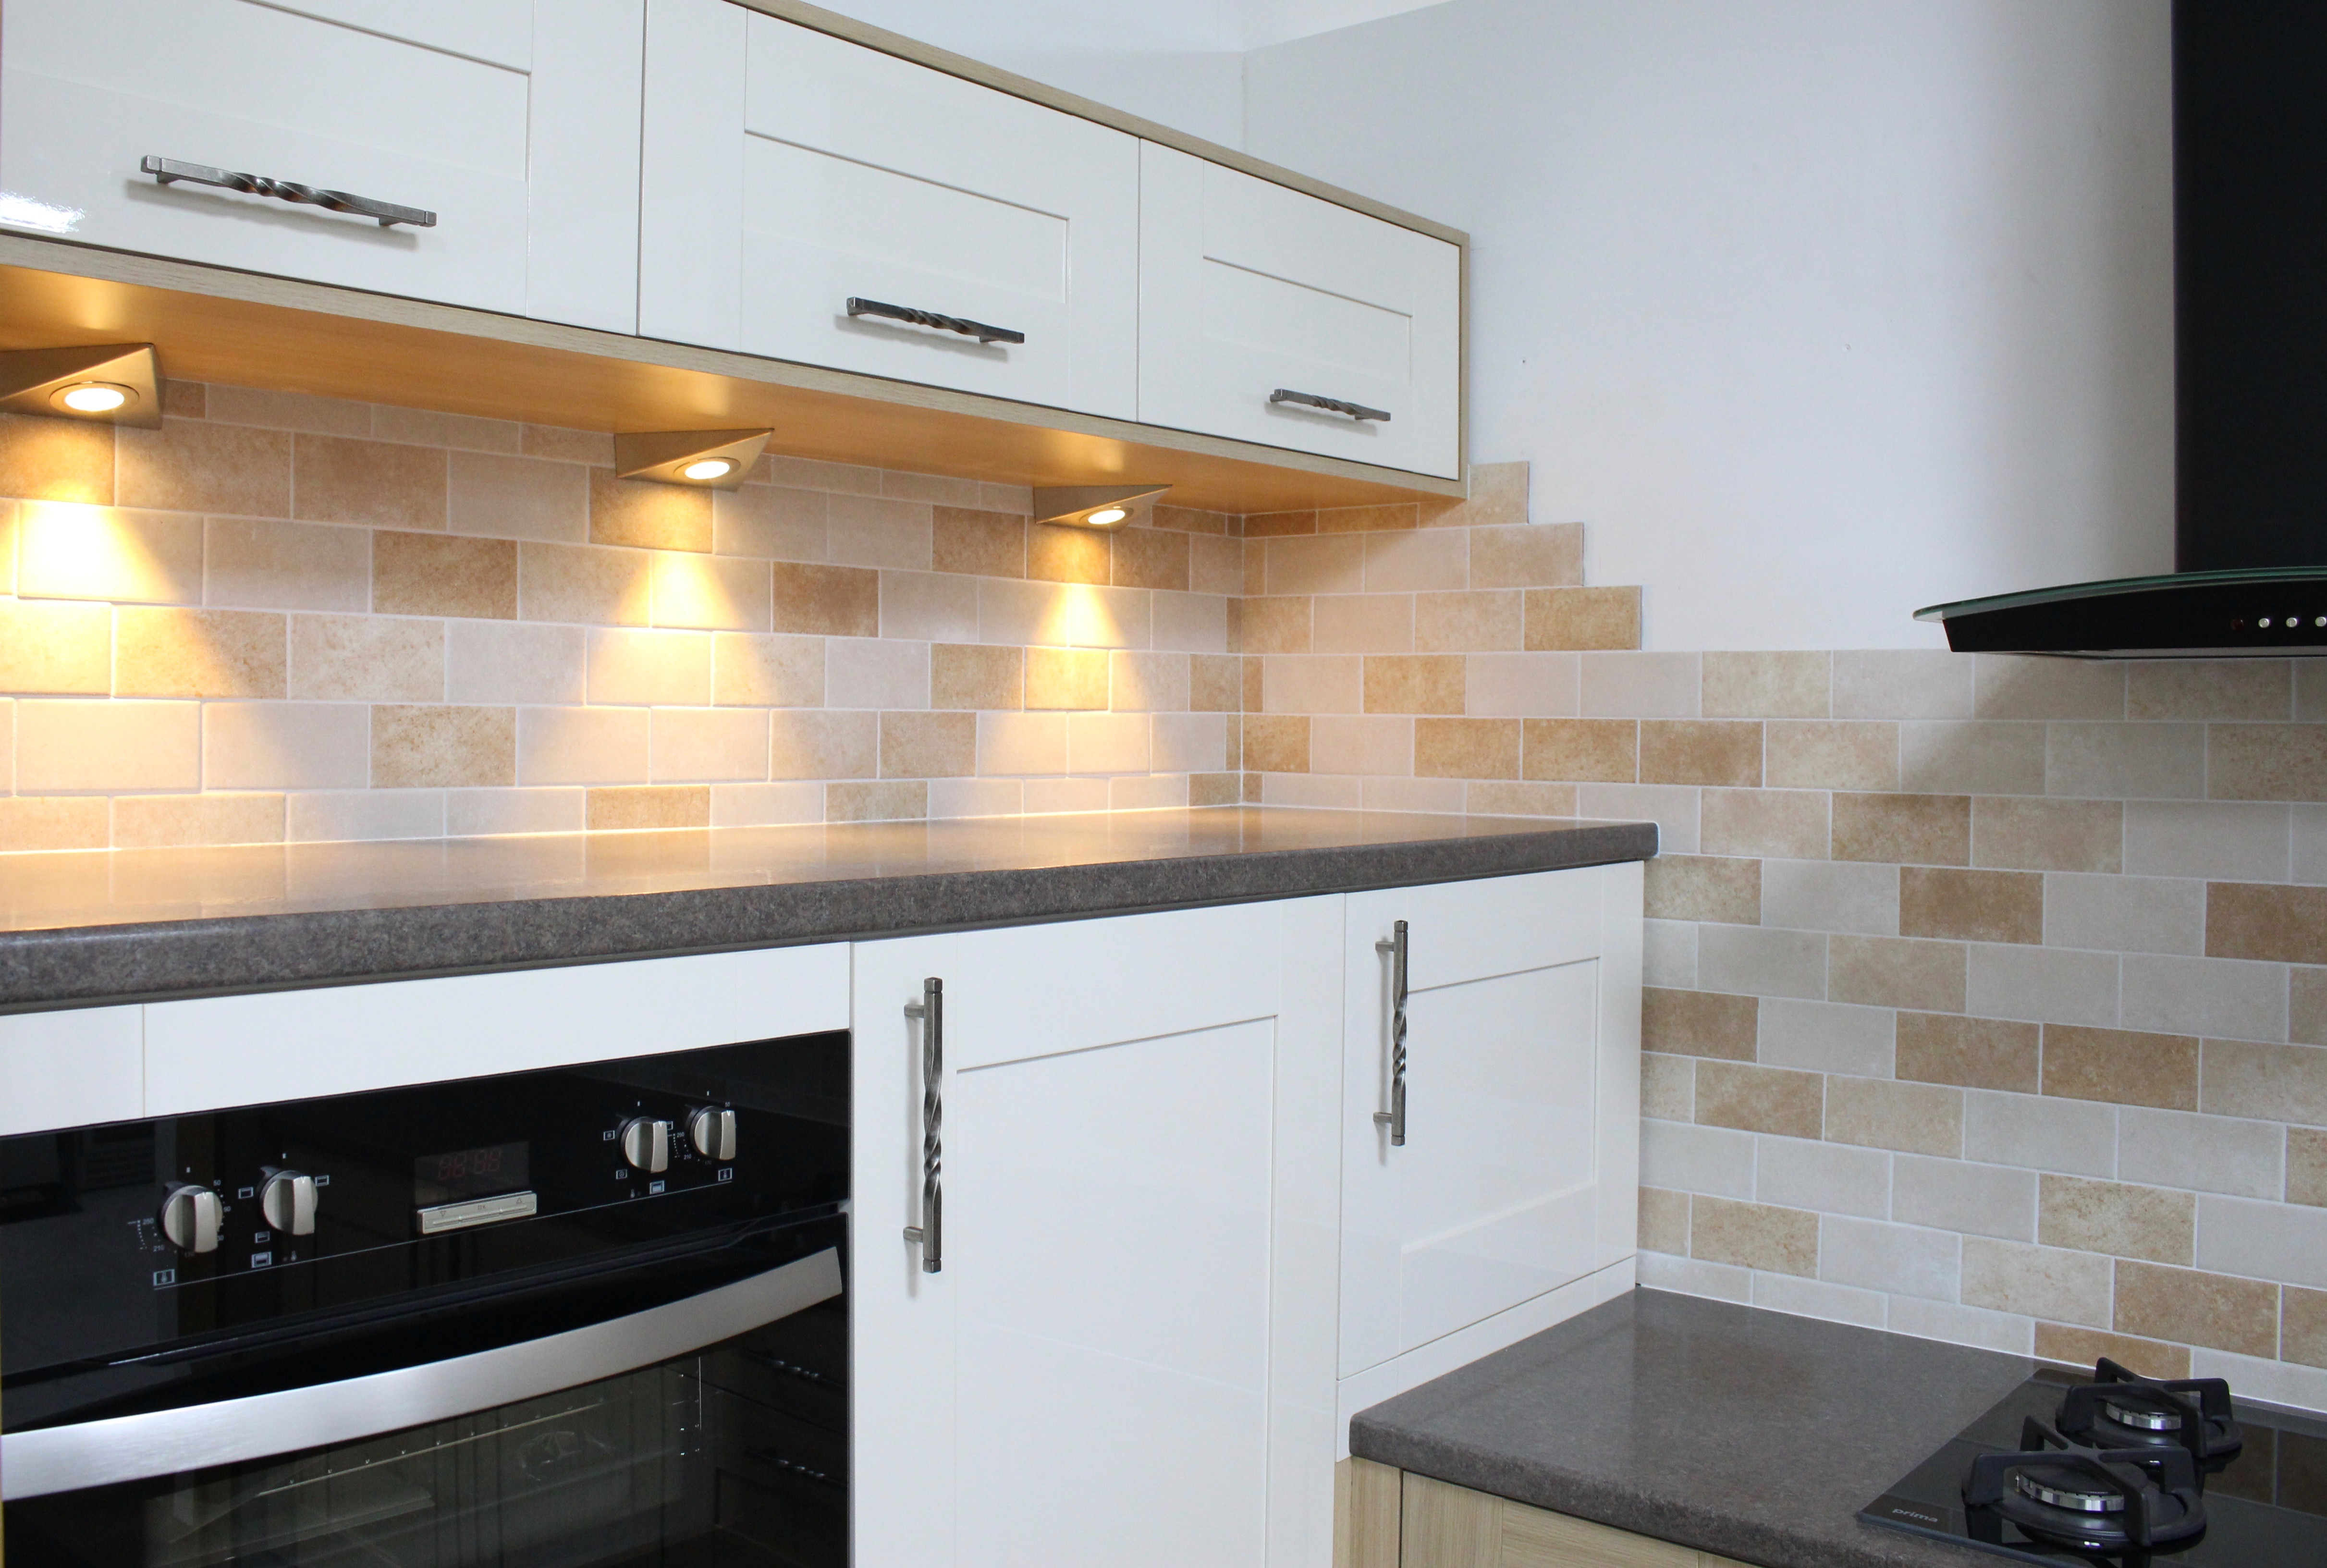 kitchen design doncaster the best range of kitchens in doncaster jct interiors 1184